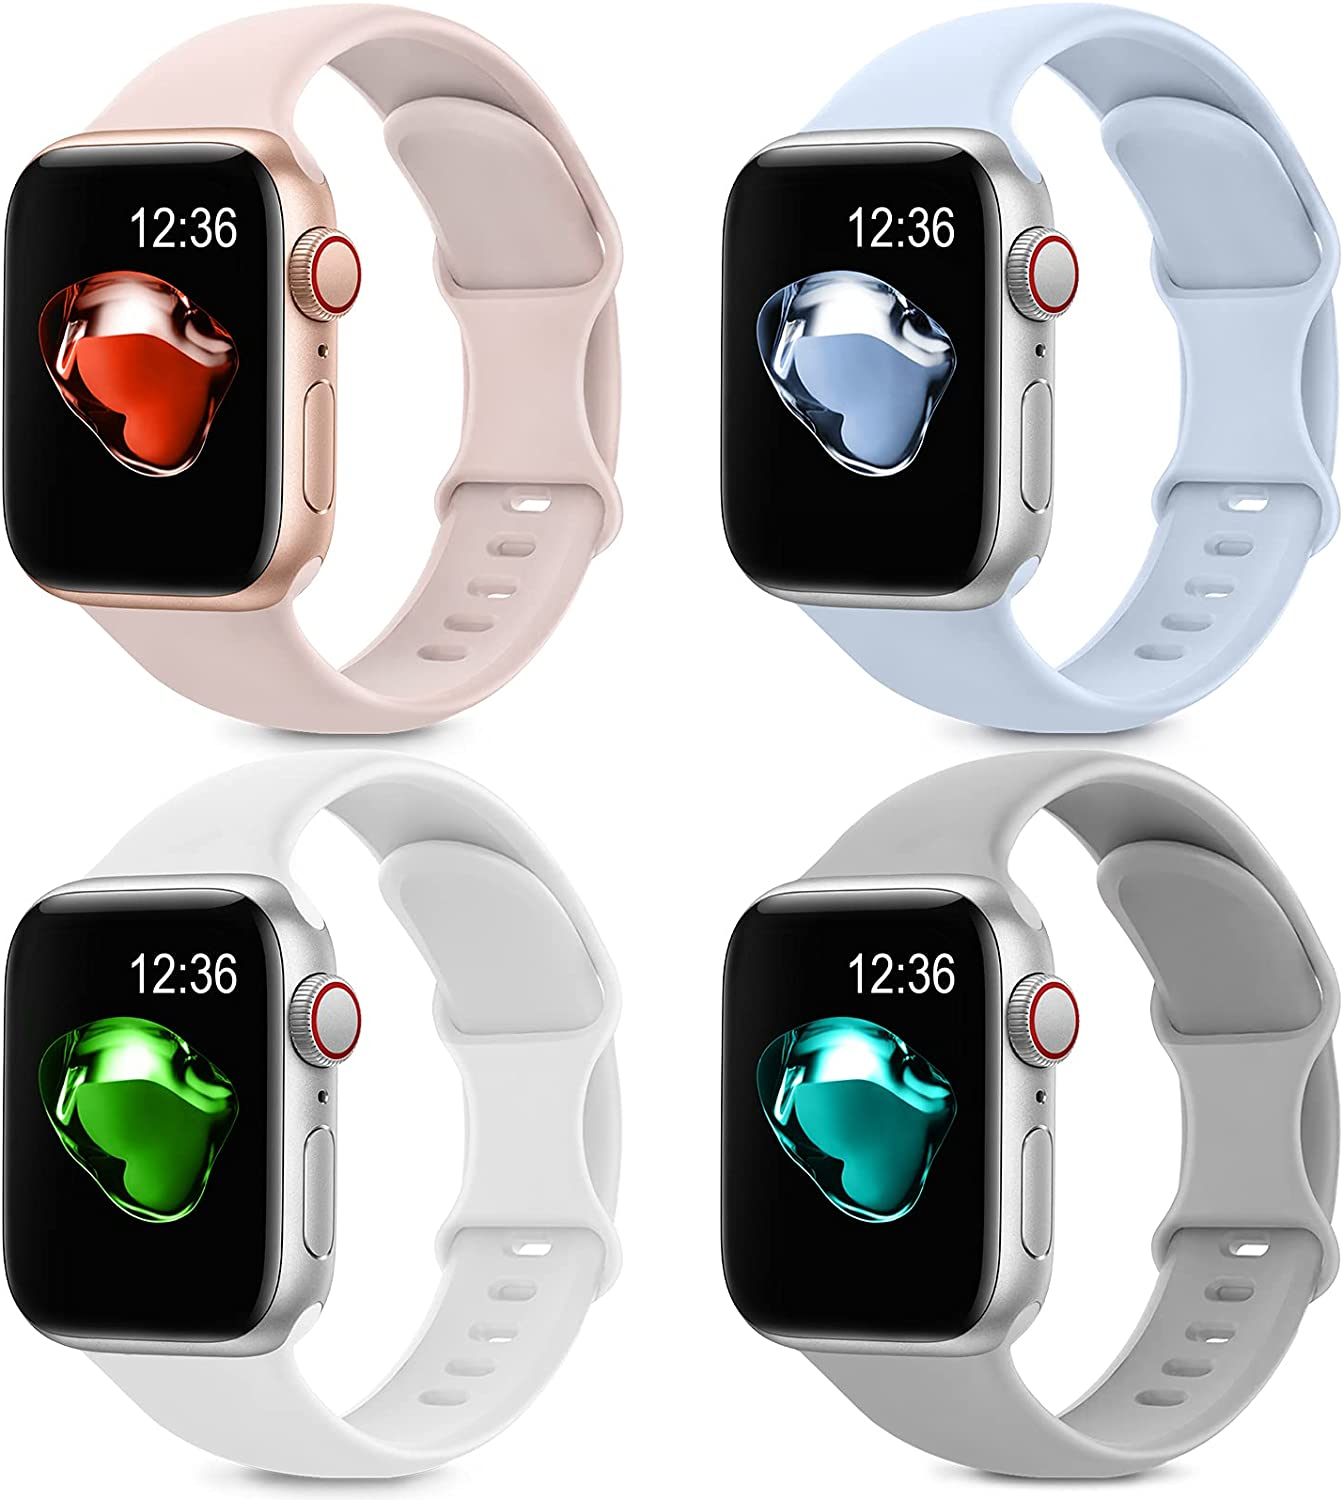 4 Pack Sport Silicone Bands Compatible with Apple Watch Bands 38mm 40mm Women Men, Soft Replacement Strap Band Compatible for iwatch Series 6 SE 5 4 3 2 1(38MM/40MM,Pink+Blue+Gray+White)